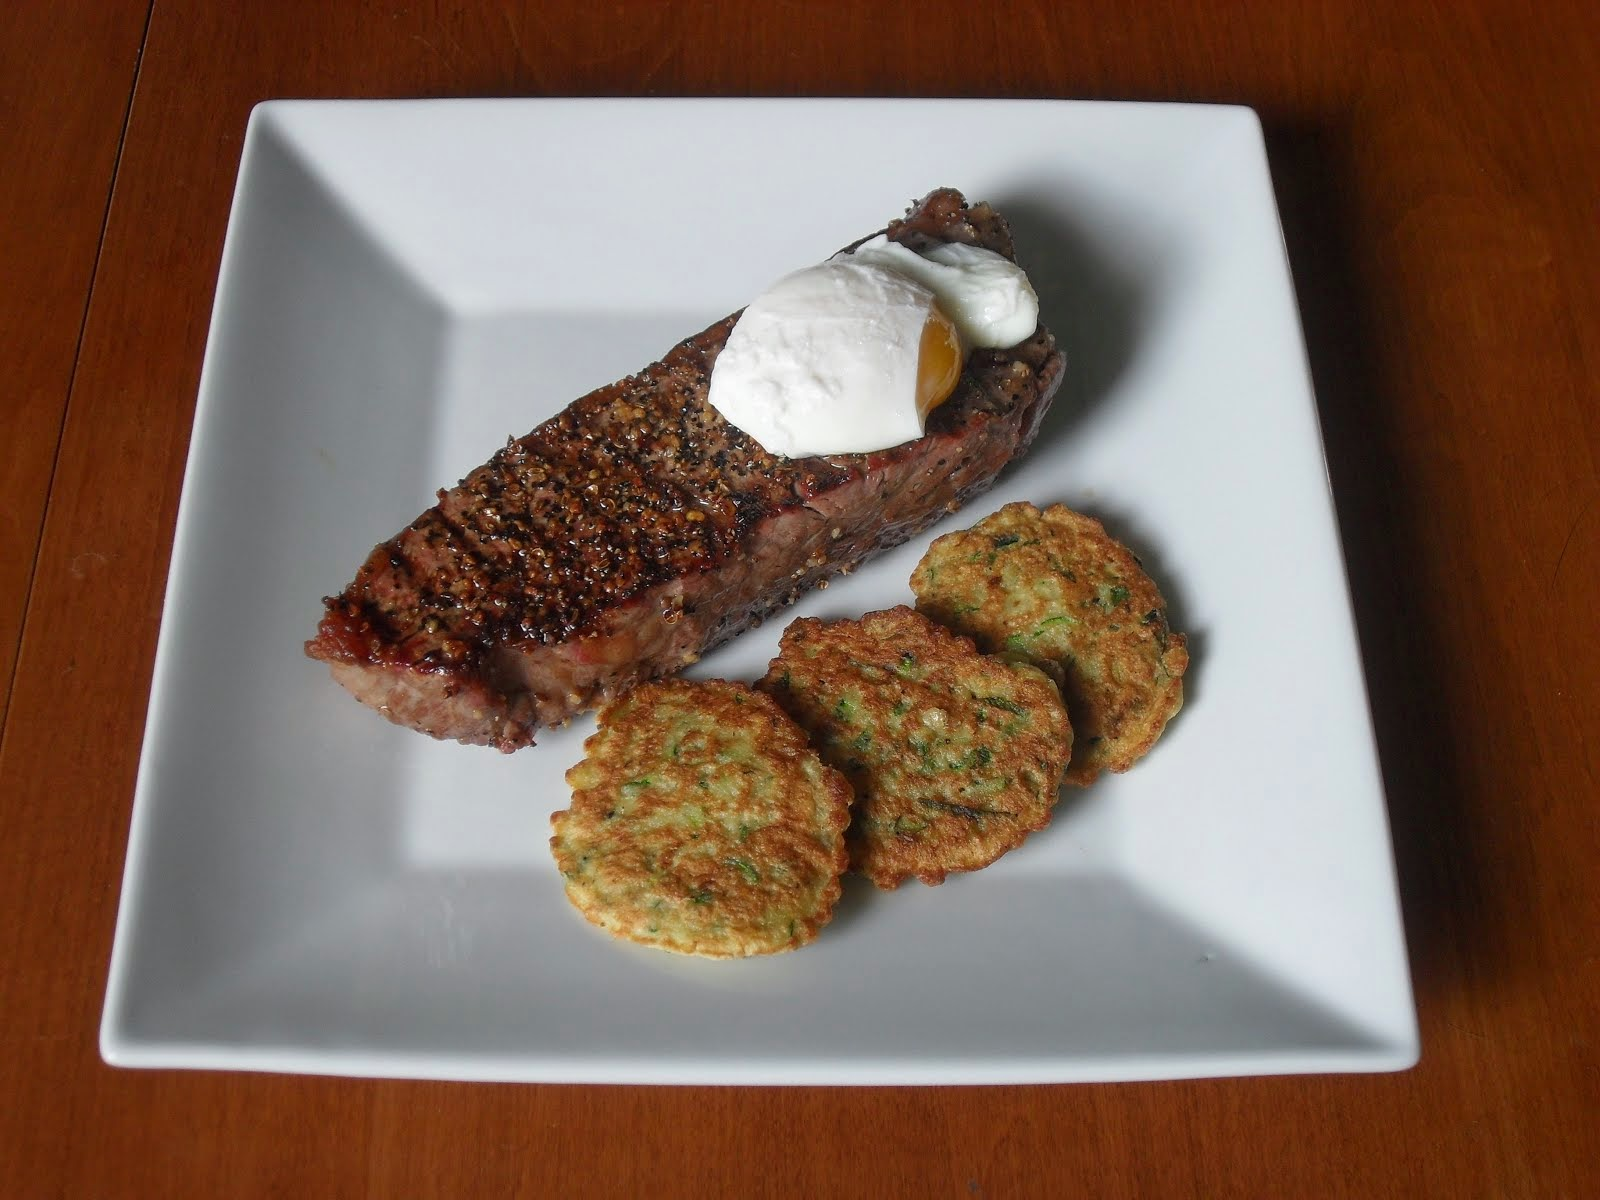 Grilled Steak with A Poached Egg and Zucchini Fritters